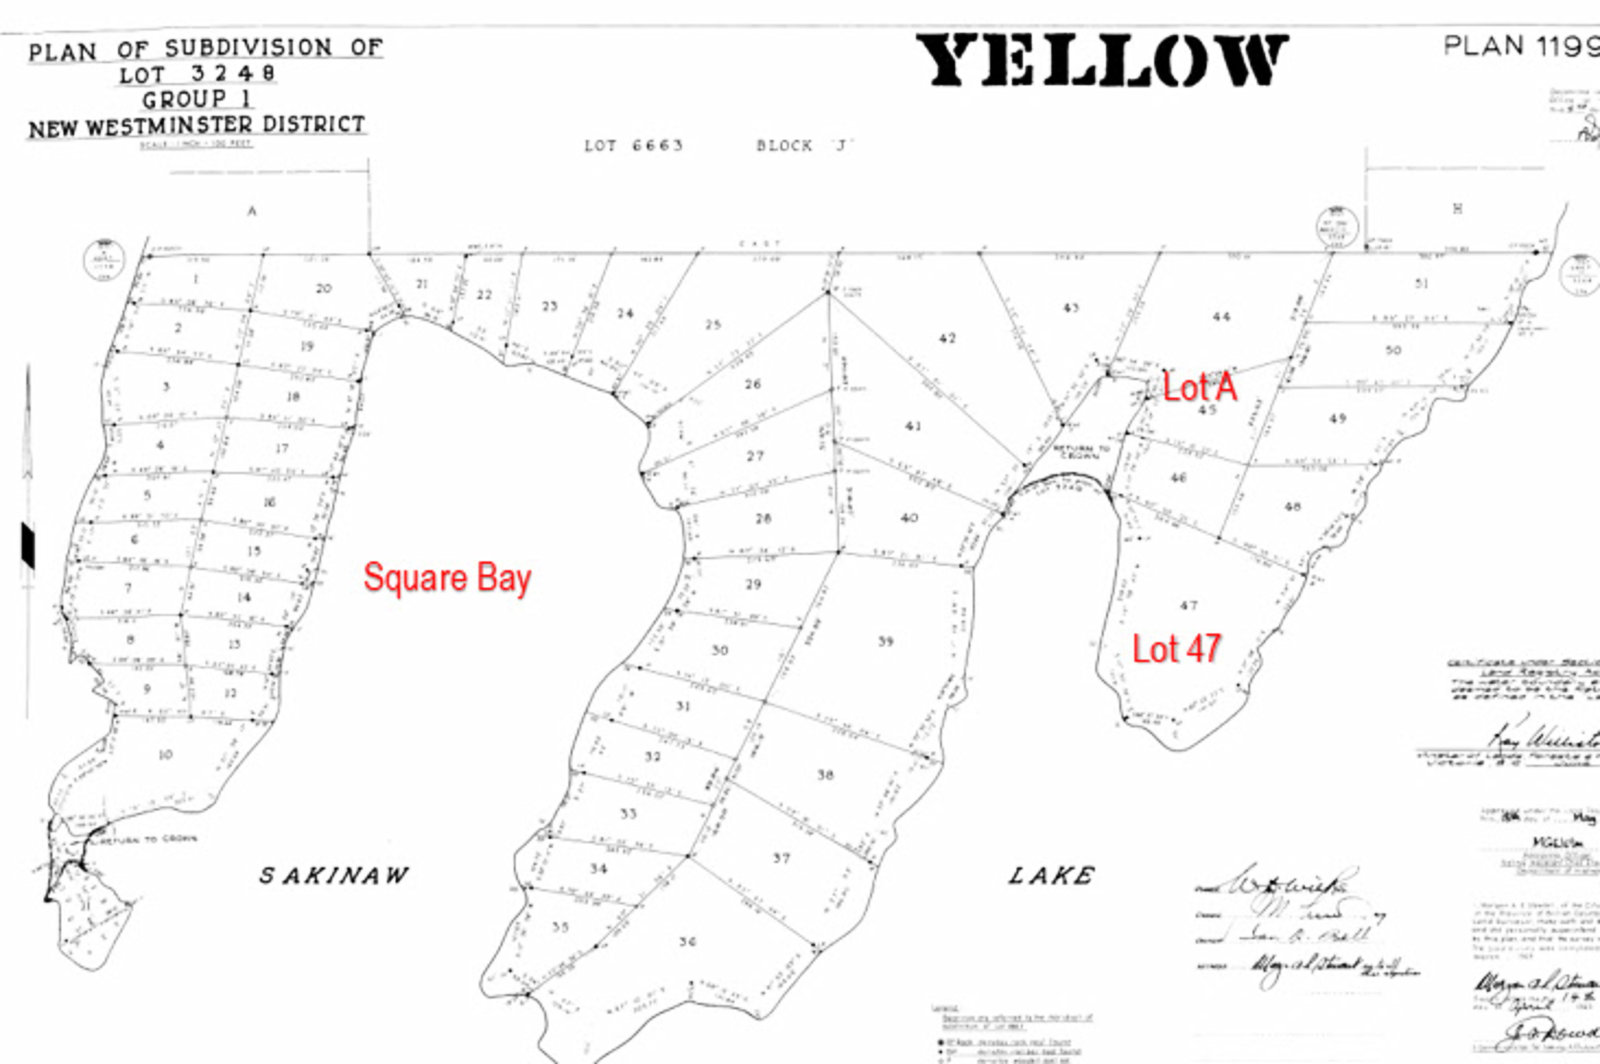 Location on Sakinaw Lake